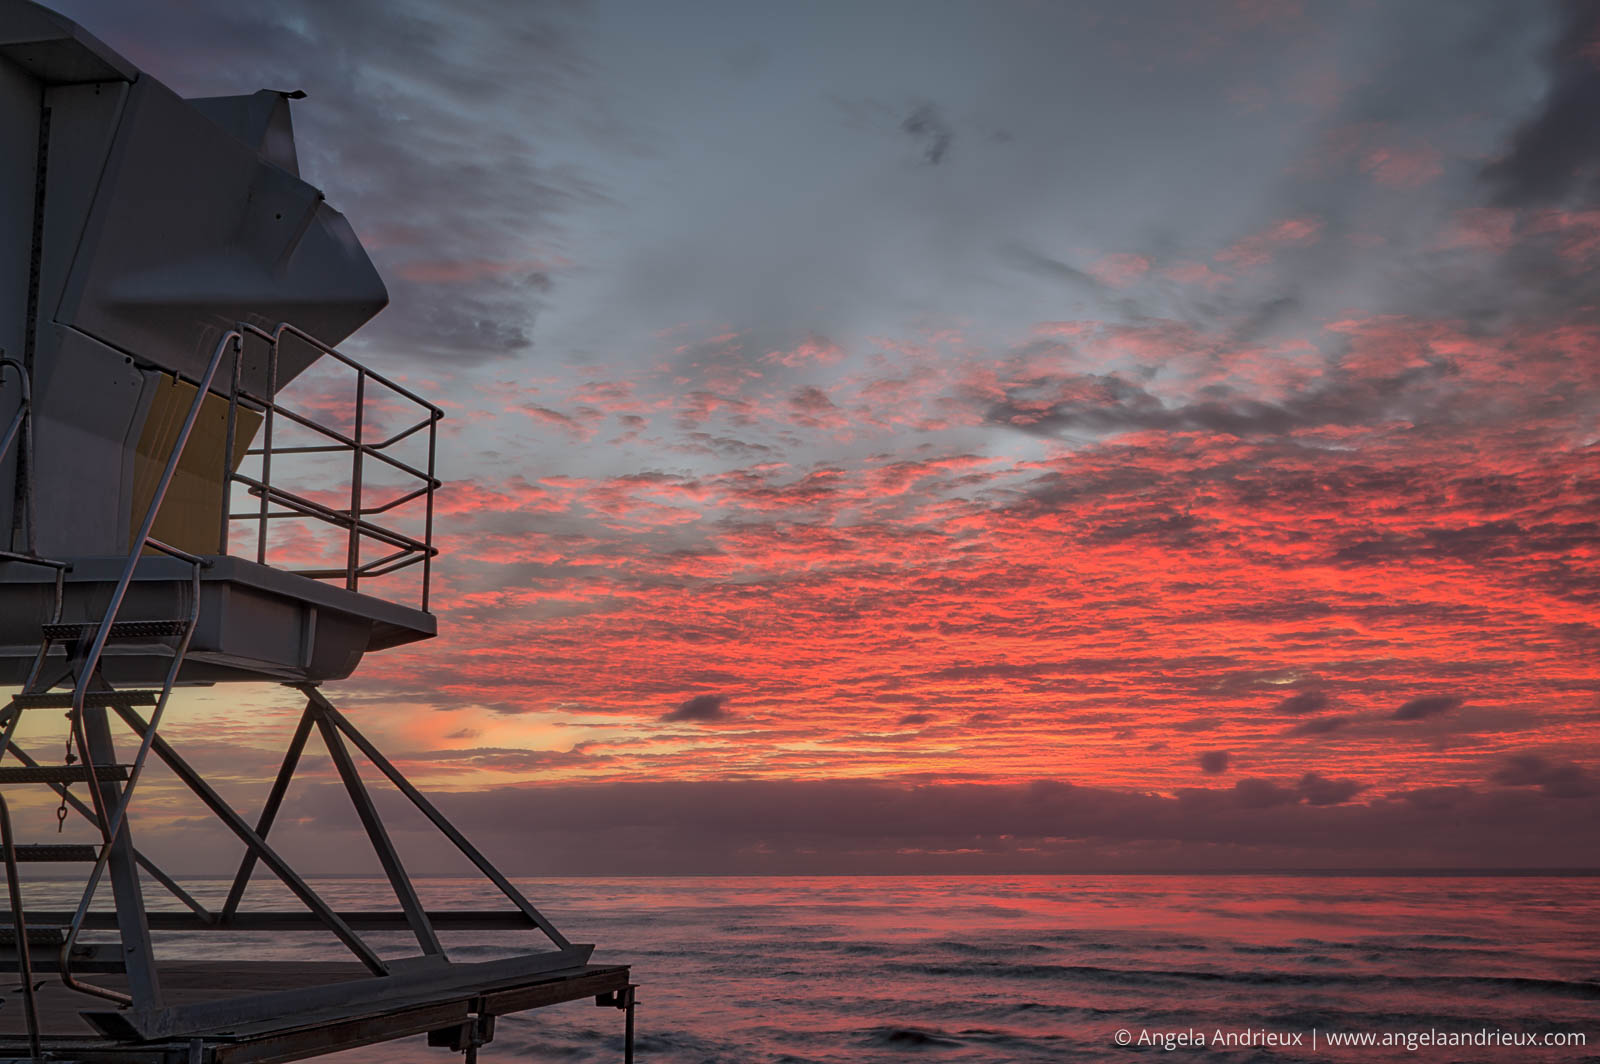 La Jolla Lifeguard Stand at Sunset